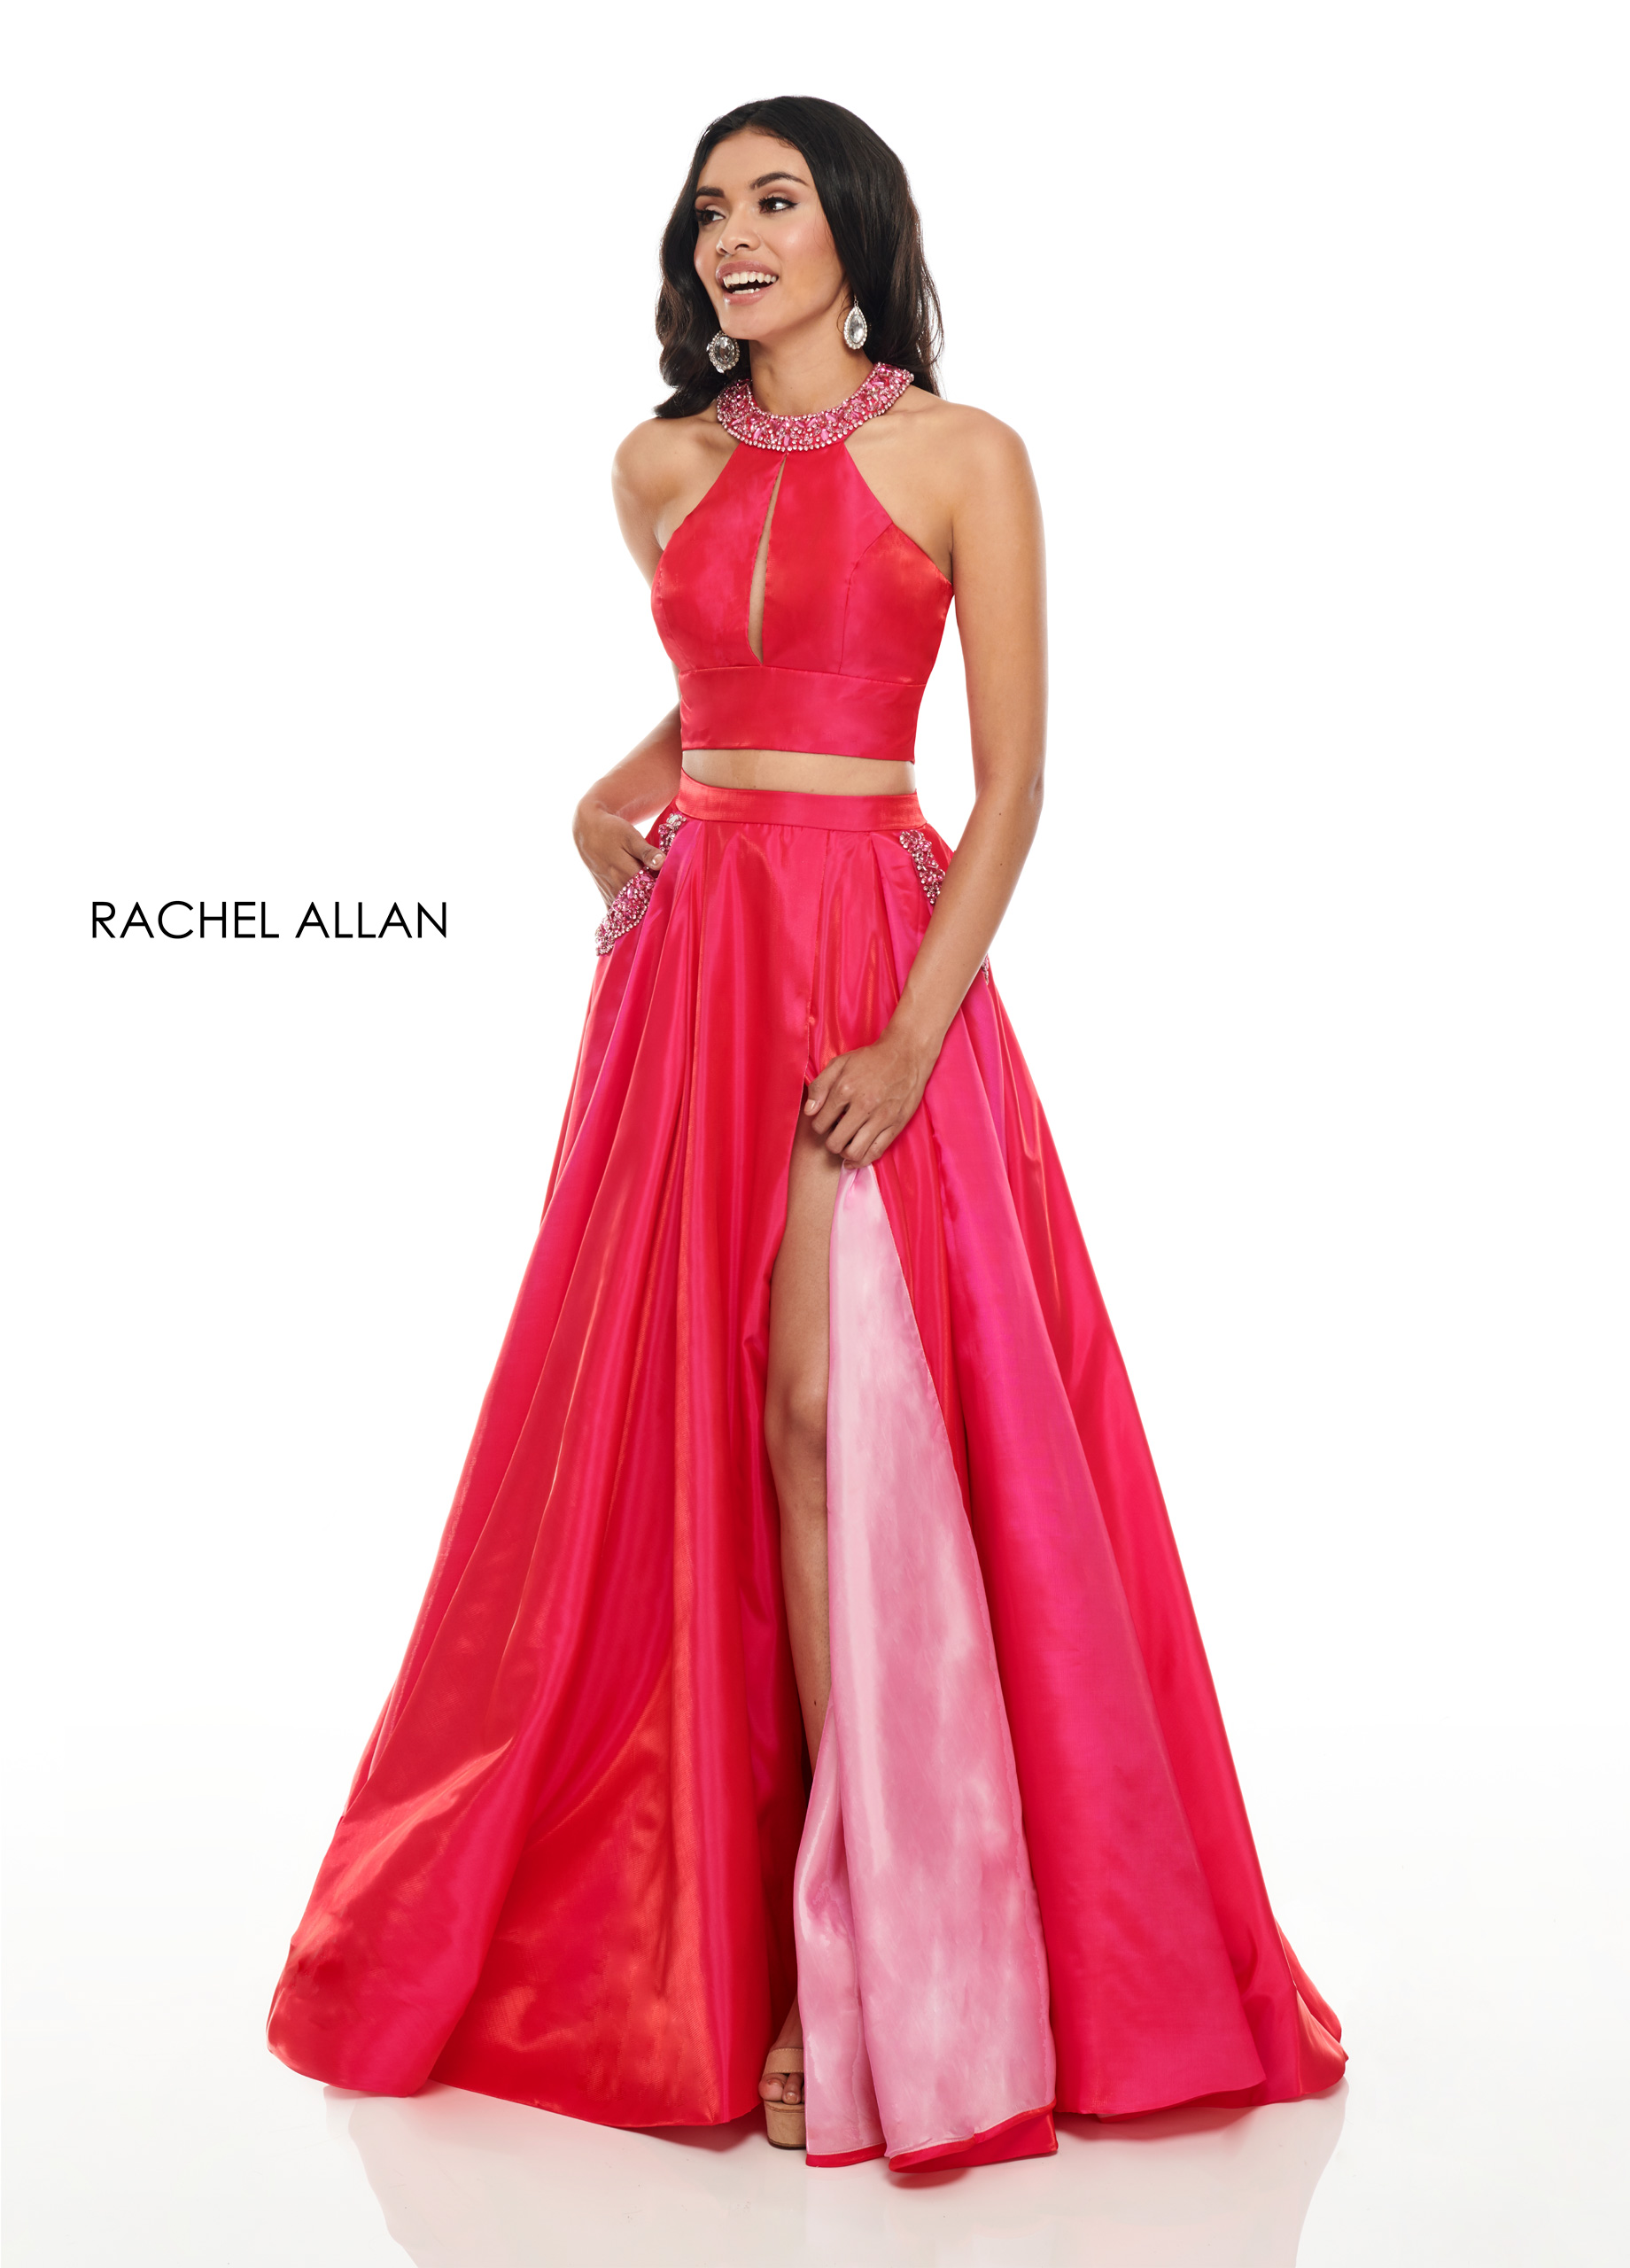 Beaded Two-Piece Prom Dresses in Fuchsia Color